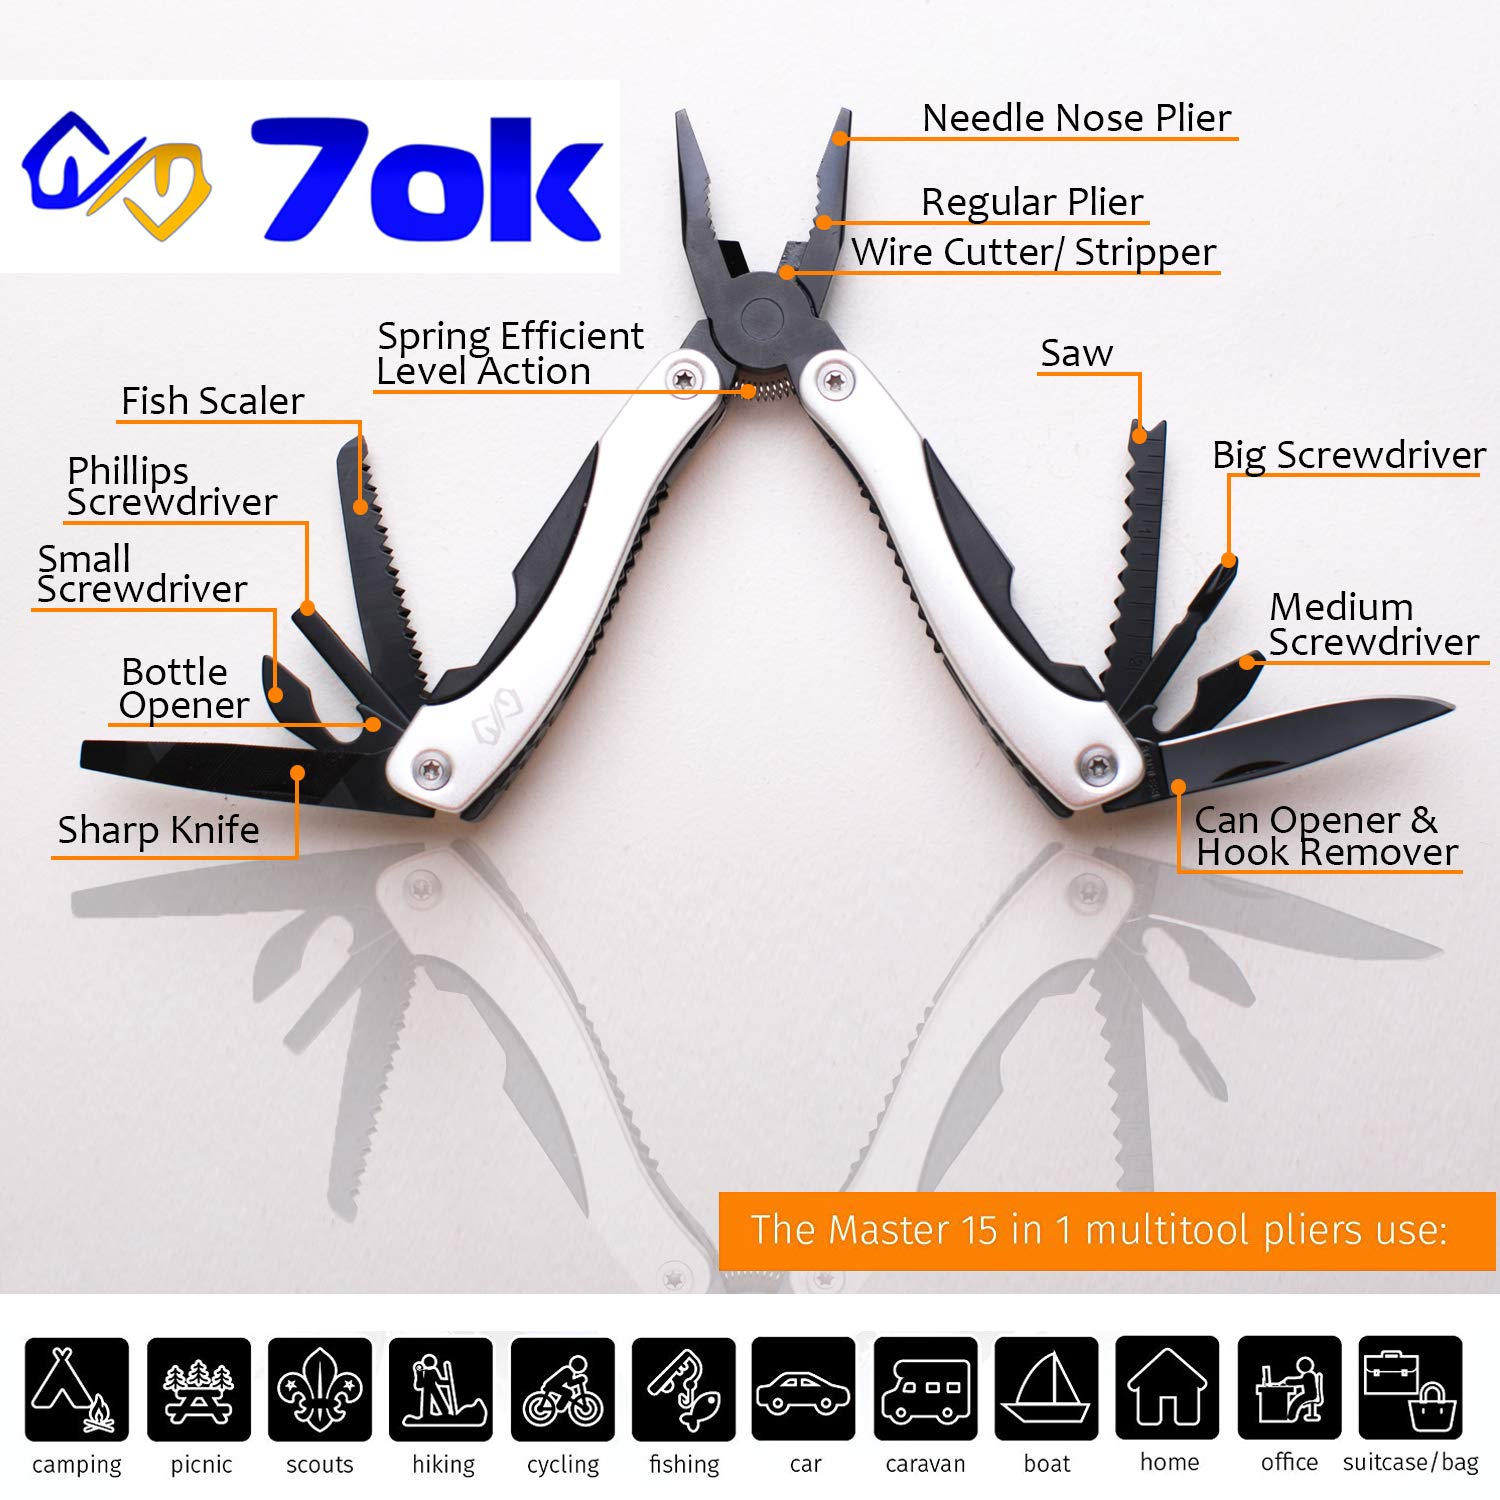 Steel set multitool 25 in 1, pocket knife Multi-Tools pliers LED flashlight. Best for camping, fishing, boyscout, DIY repair, boy scout, car set Great idea Best gift for man, father, dad